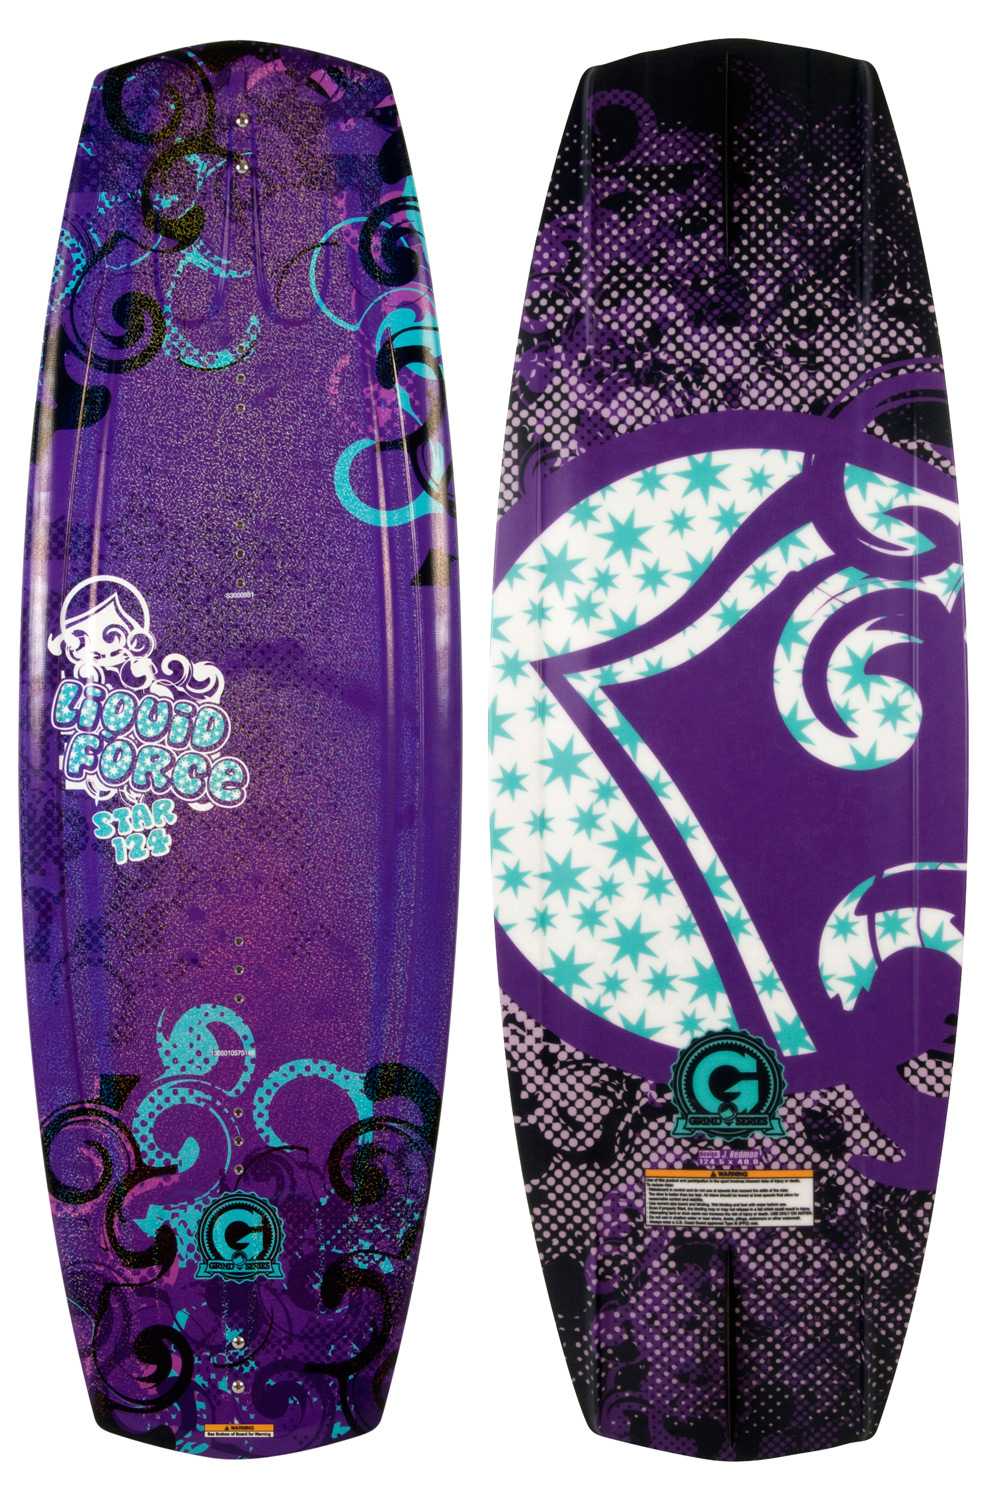 Wake The Star is a perfect board for that young ripper in your life because it is so smooth and forgiving. This board will get your little girls hooked on the sport and riding like Amber, Melissa & Megan in no time. Maximize their fun and fuel their passion with the Star and Star Grind!Key Features of the Liquid Force Star Grind Wakeboard: Classic Continuous Rocker on 111 and 118: (118 is a slightly more aggressive rocker) This rocker template provides a smoothly predictable ride. Mellow, 3-Stage Hybrid Rocker on 124: The continuous curve with extra kick in the tip provides smooth edging with higher pop off the wake. Variable Edge Rail Mellow Molded in Fins: (118 has deeper and sharper fins and 124 has canted fins to get on edge quicker) These fins provide extra tracking control for the young ripper. LF Exclusive GRIND base Material Wakeboard Binding CompatabilityCan accomodate bindings with a 6 inch binding plate found here. Can only accommodate a single mounting position option for Liquid Force bindings with a 8 inch binding plate and offers two positions for all other vendors found here. - $195.95